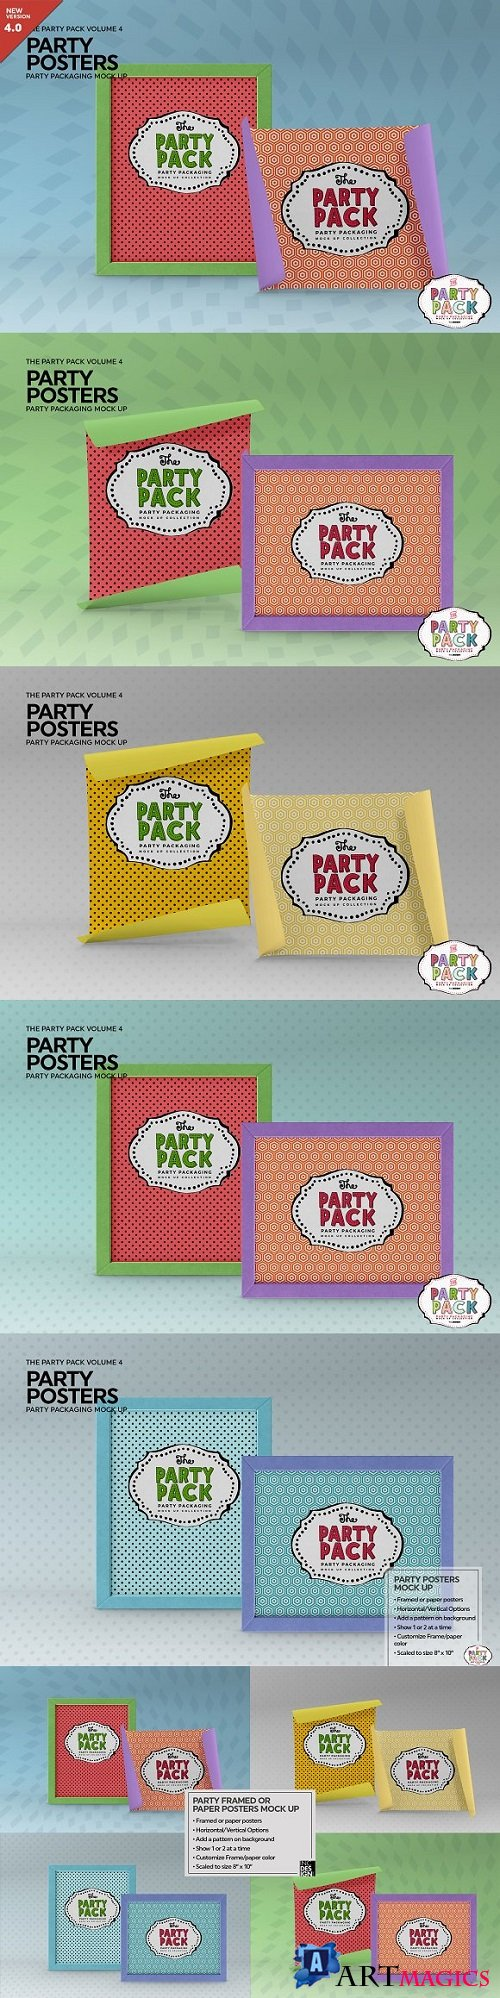 Party Posters Packaging MockUp - 2199343